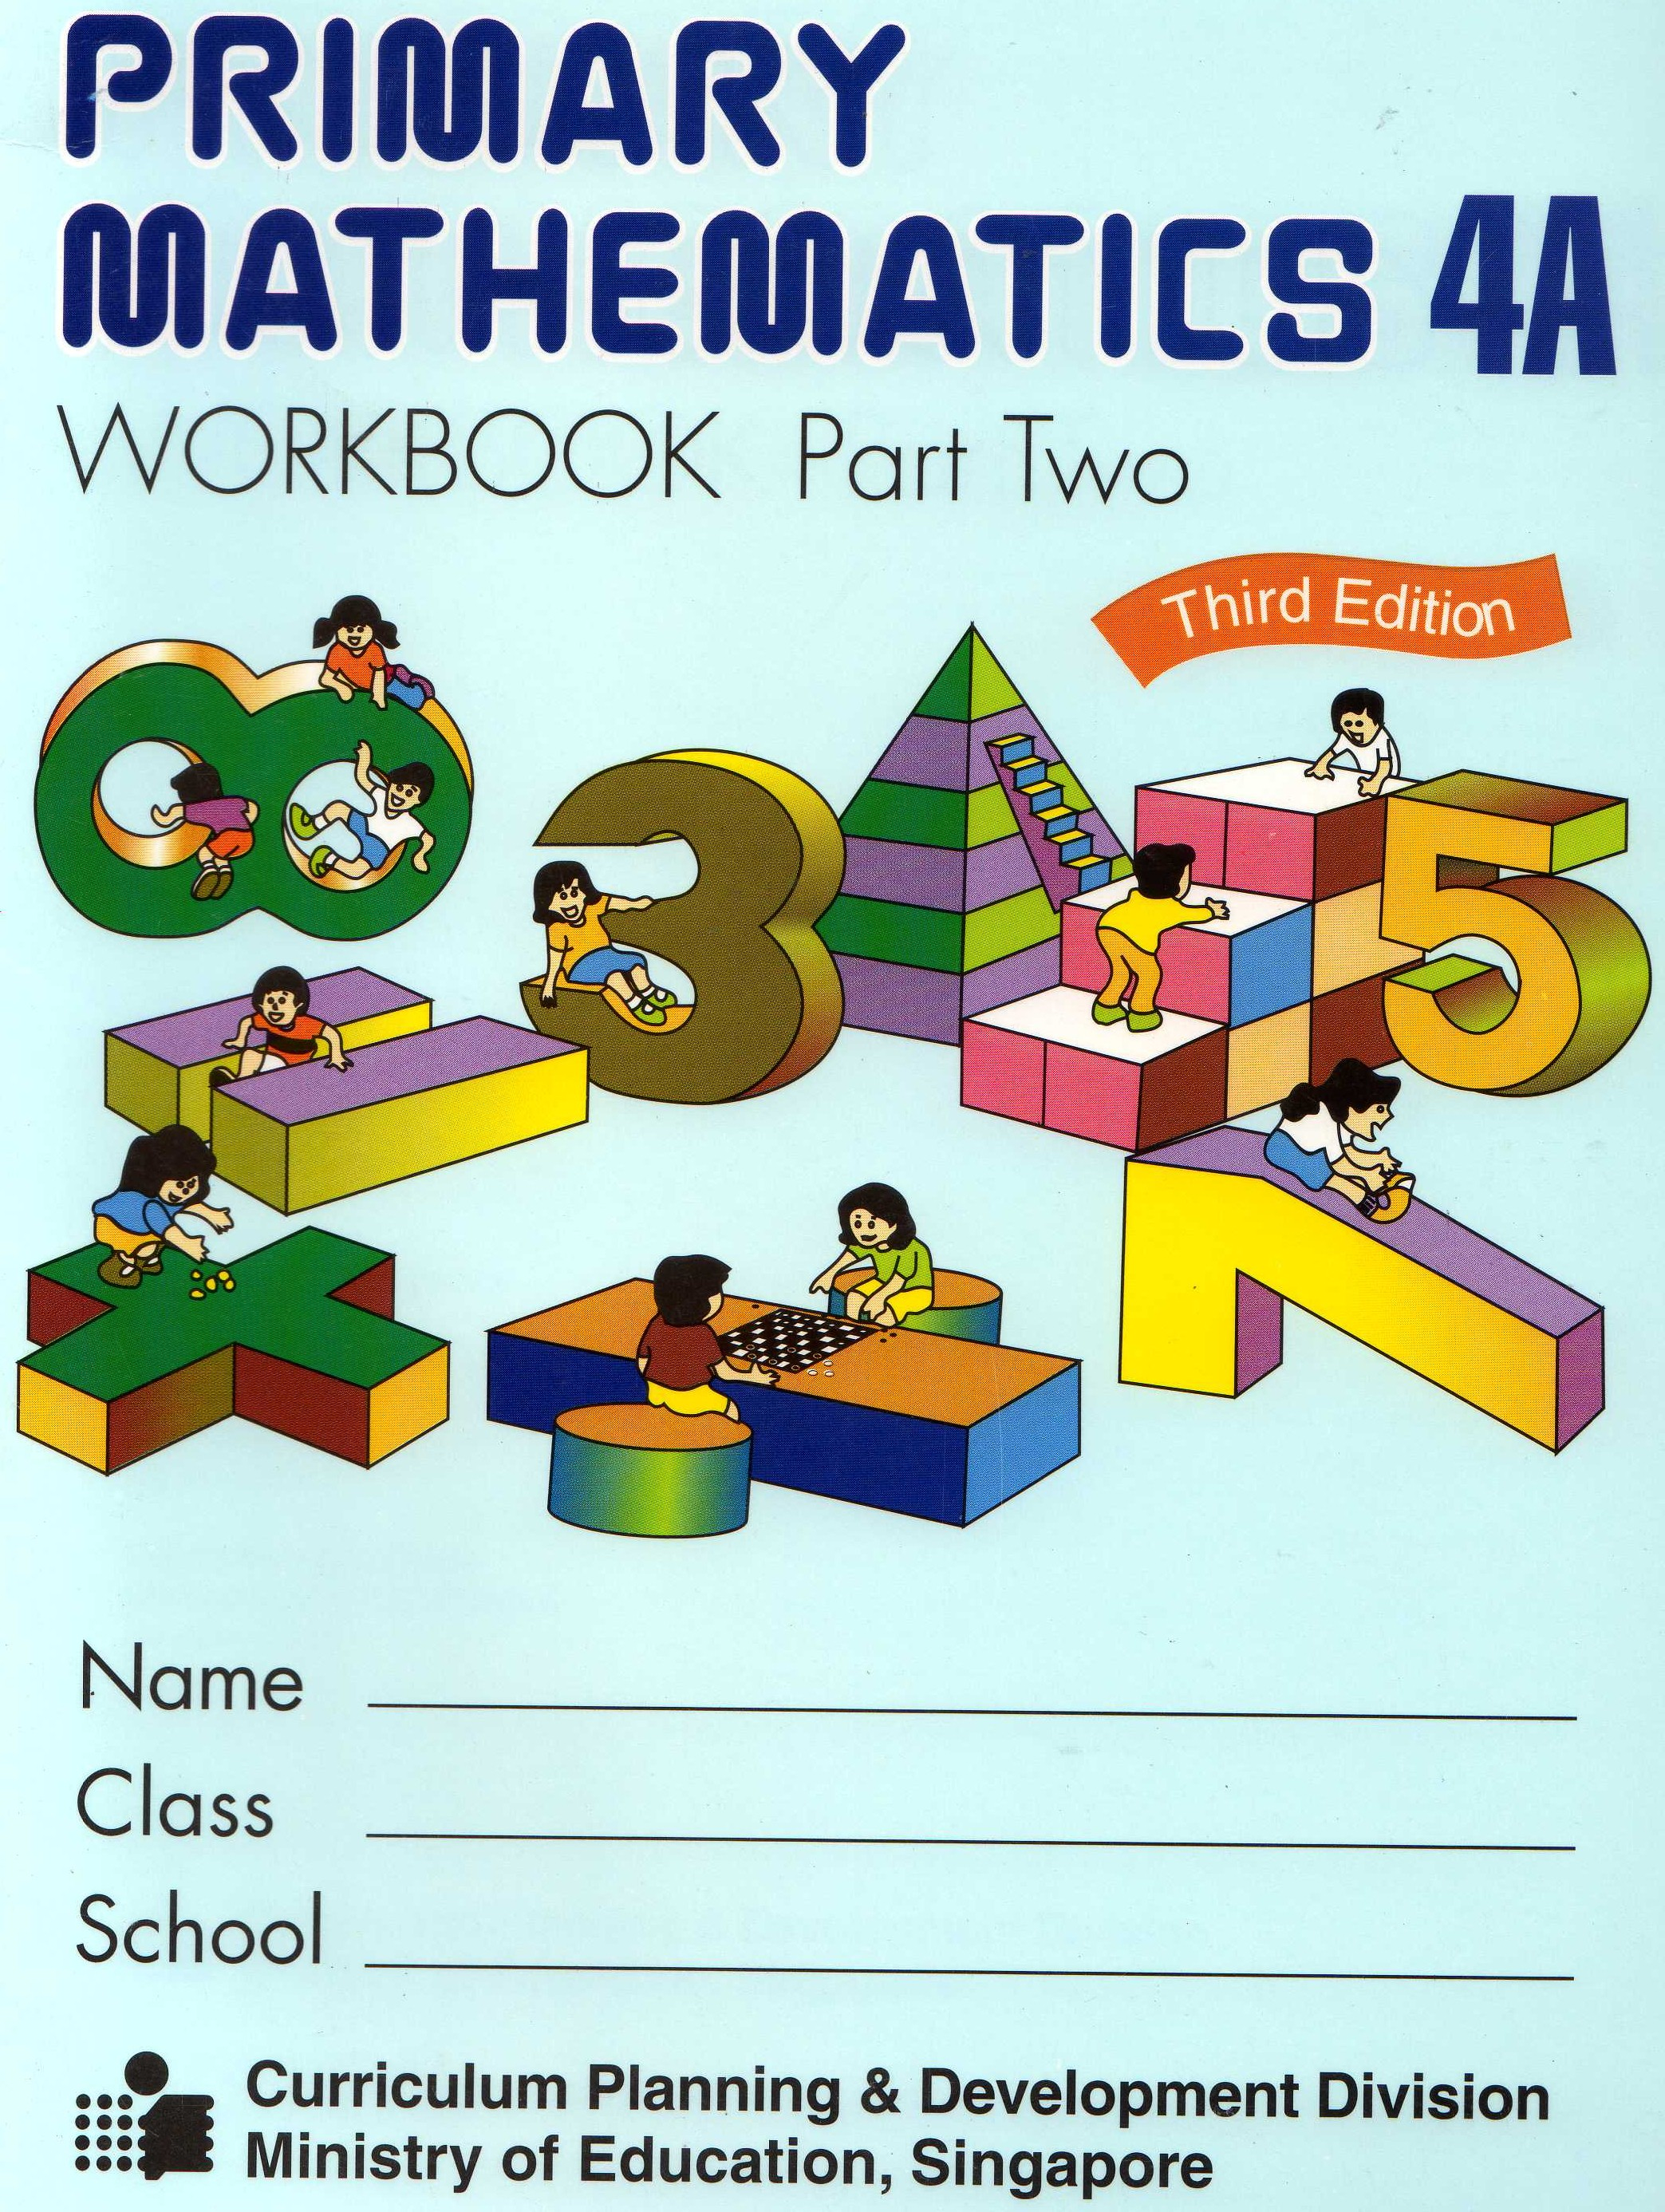 Math books for math prowess | AILEEN IN WONDERLAND ... DOWN MY ...